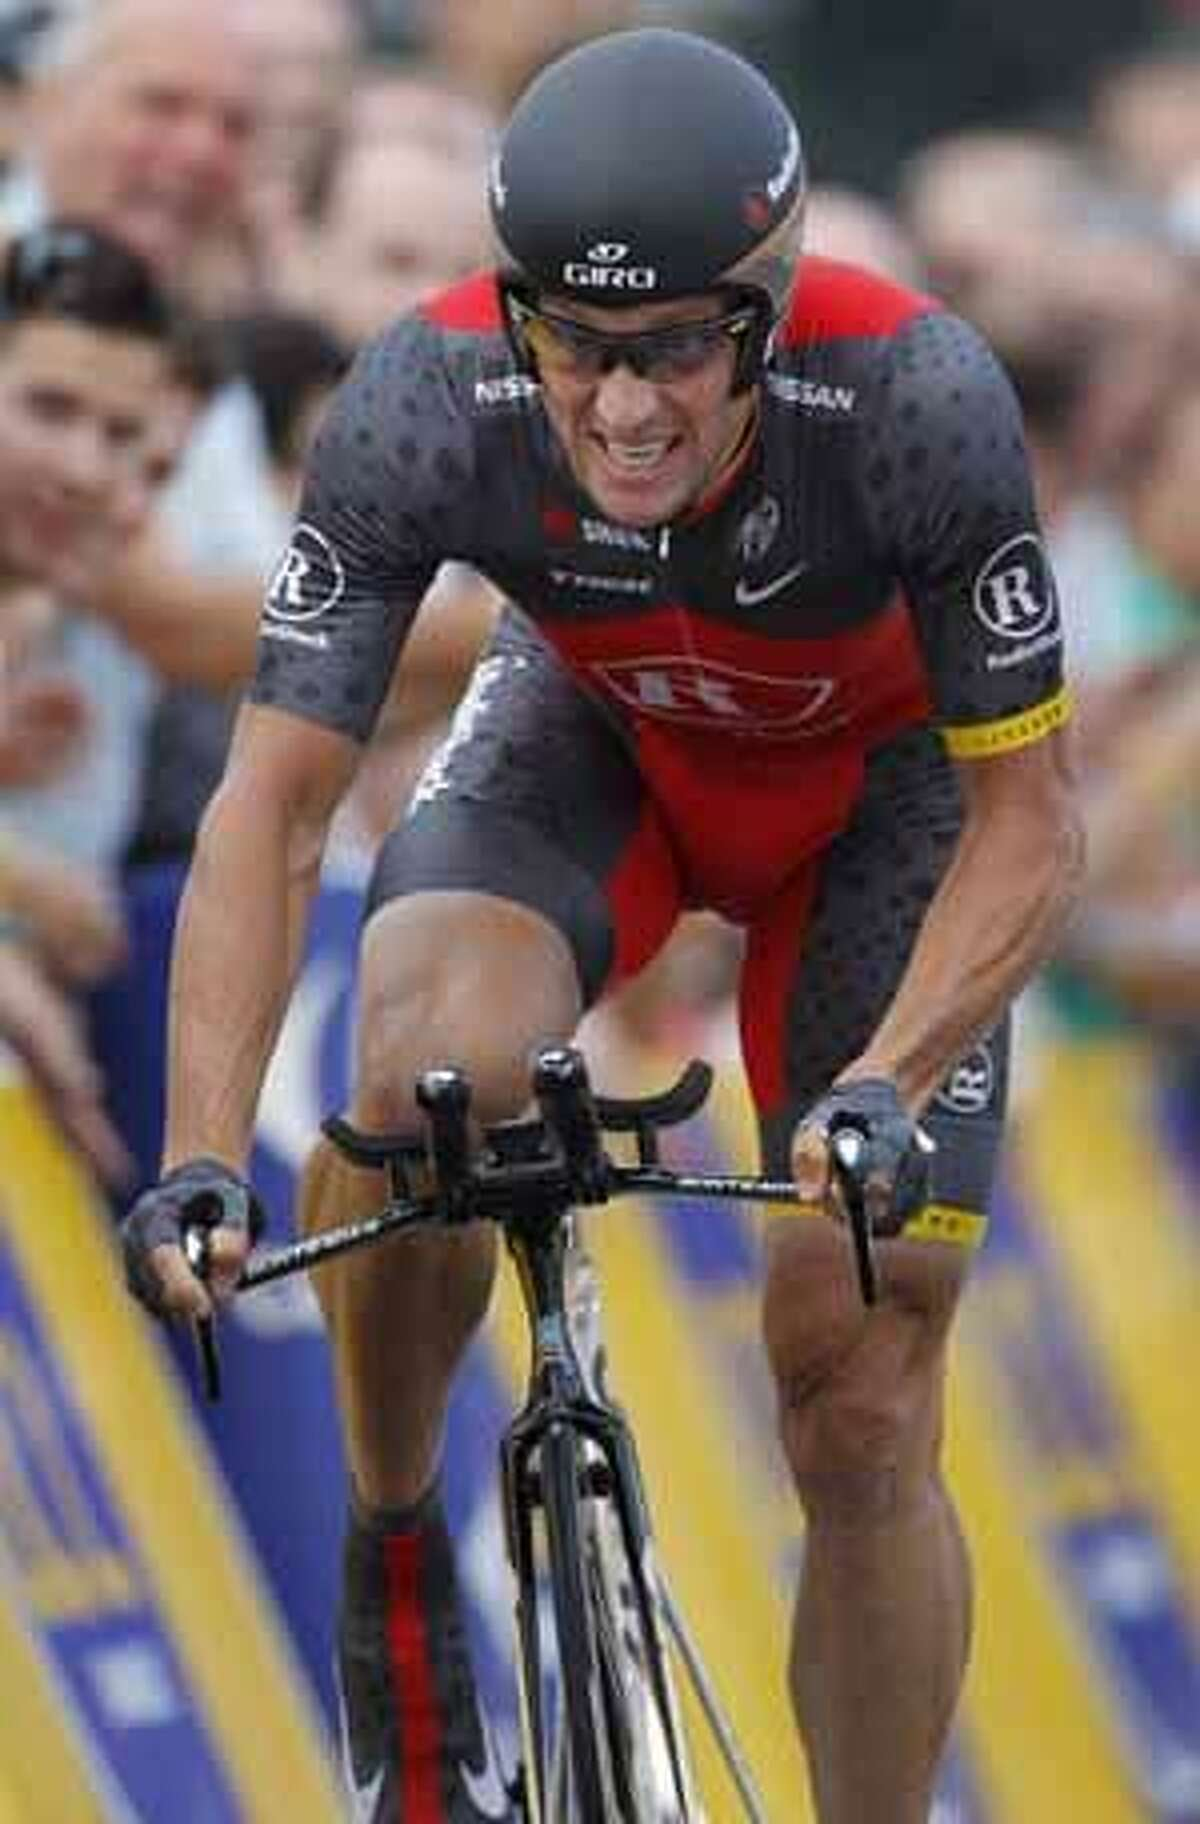 Seven-time Tour de France winner Lance Armstrong strains to take a fourth place during the prologue of the Tour de France cycling race, an individual time trial over 8,9 kilometers (5.5 miles) in the port city of Rotterdam, Netherlands, Saturday July 3, 2010. (AP Photo/Laurent Rebours)